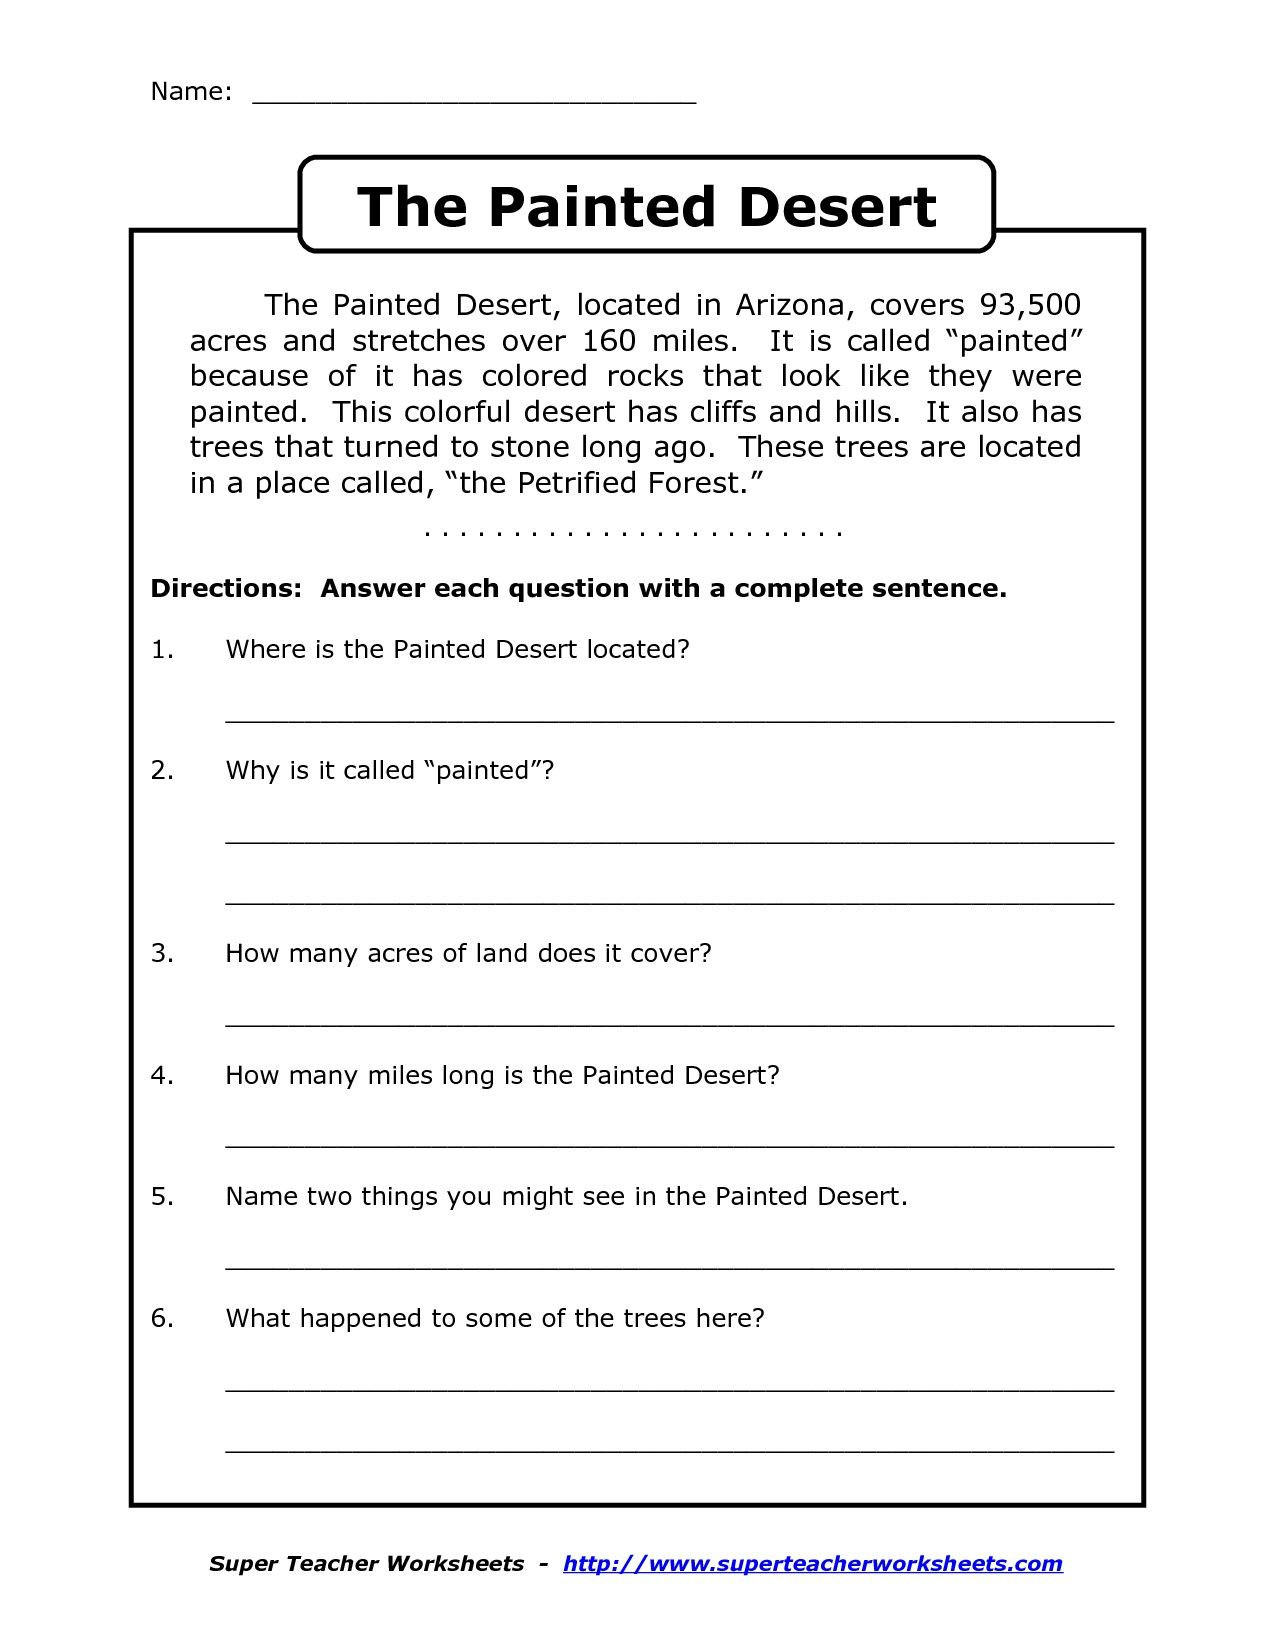 Editing Sentences 3rd Grade Prehension Worksheet for 1st Grade Y2 P3 the Painted